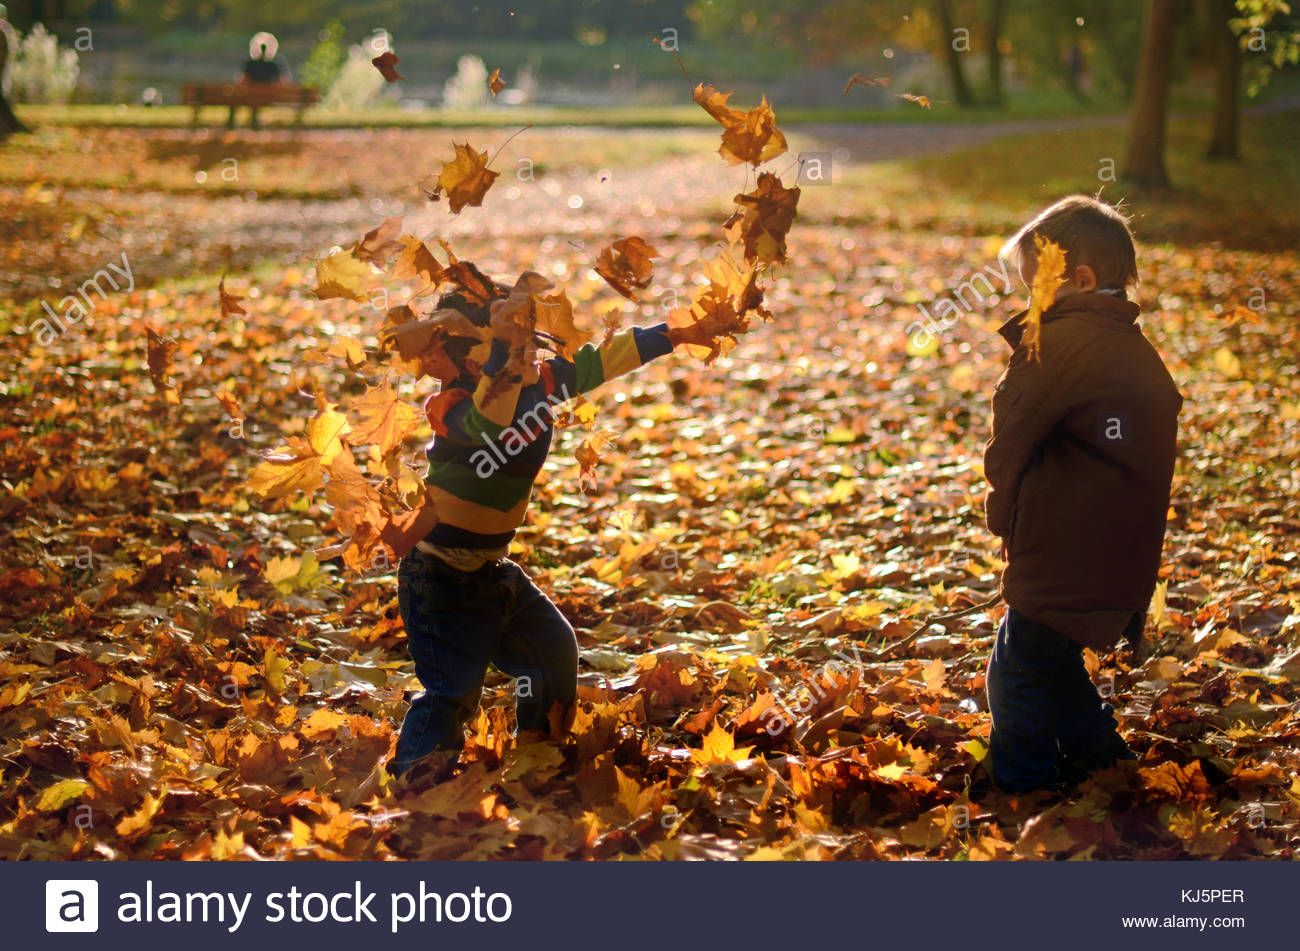 Toddlers playing with leafs - Stock Image